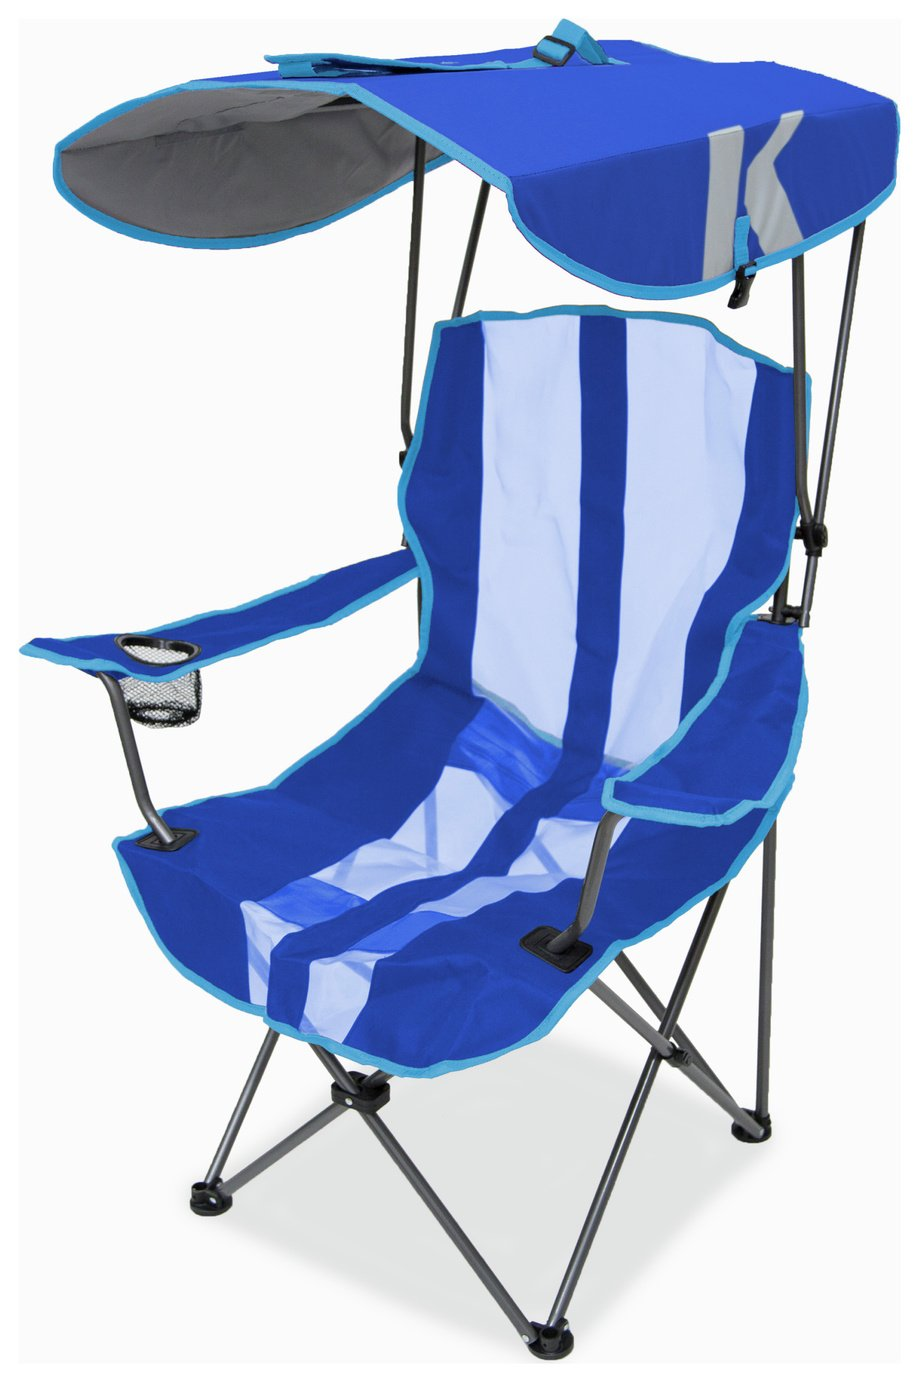 Kelsyus Camping Canopy Chair